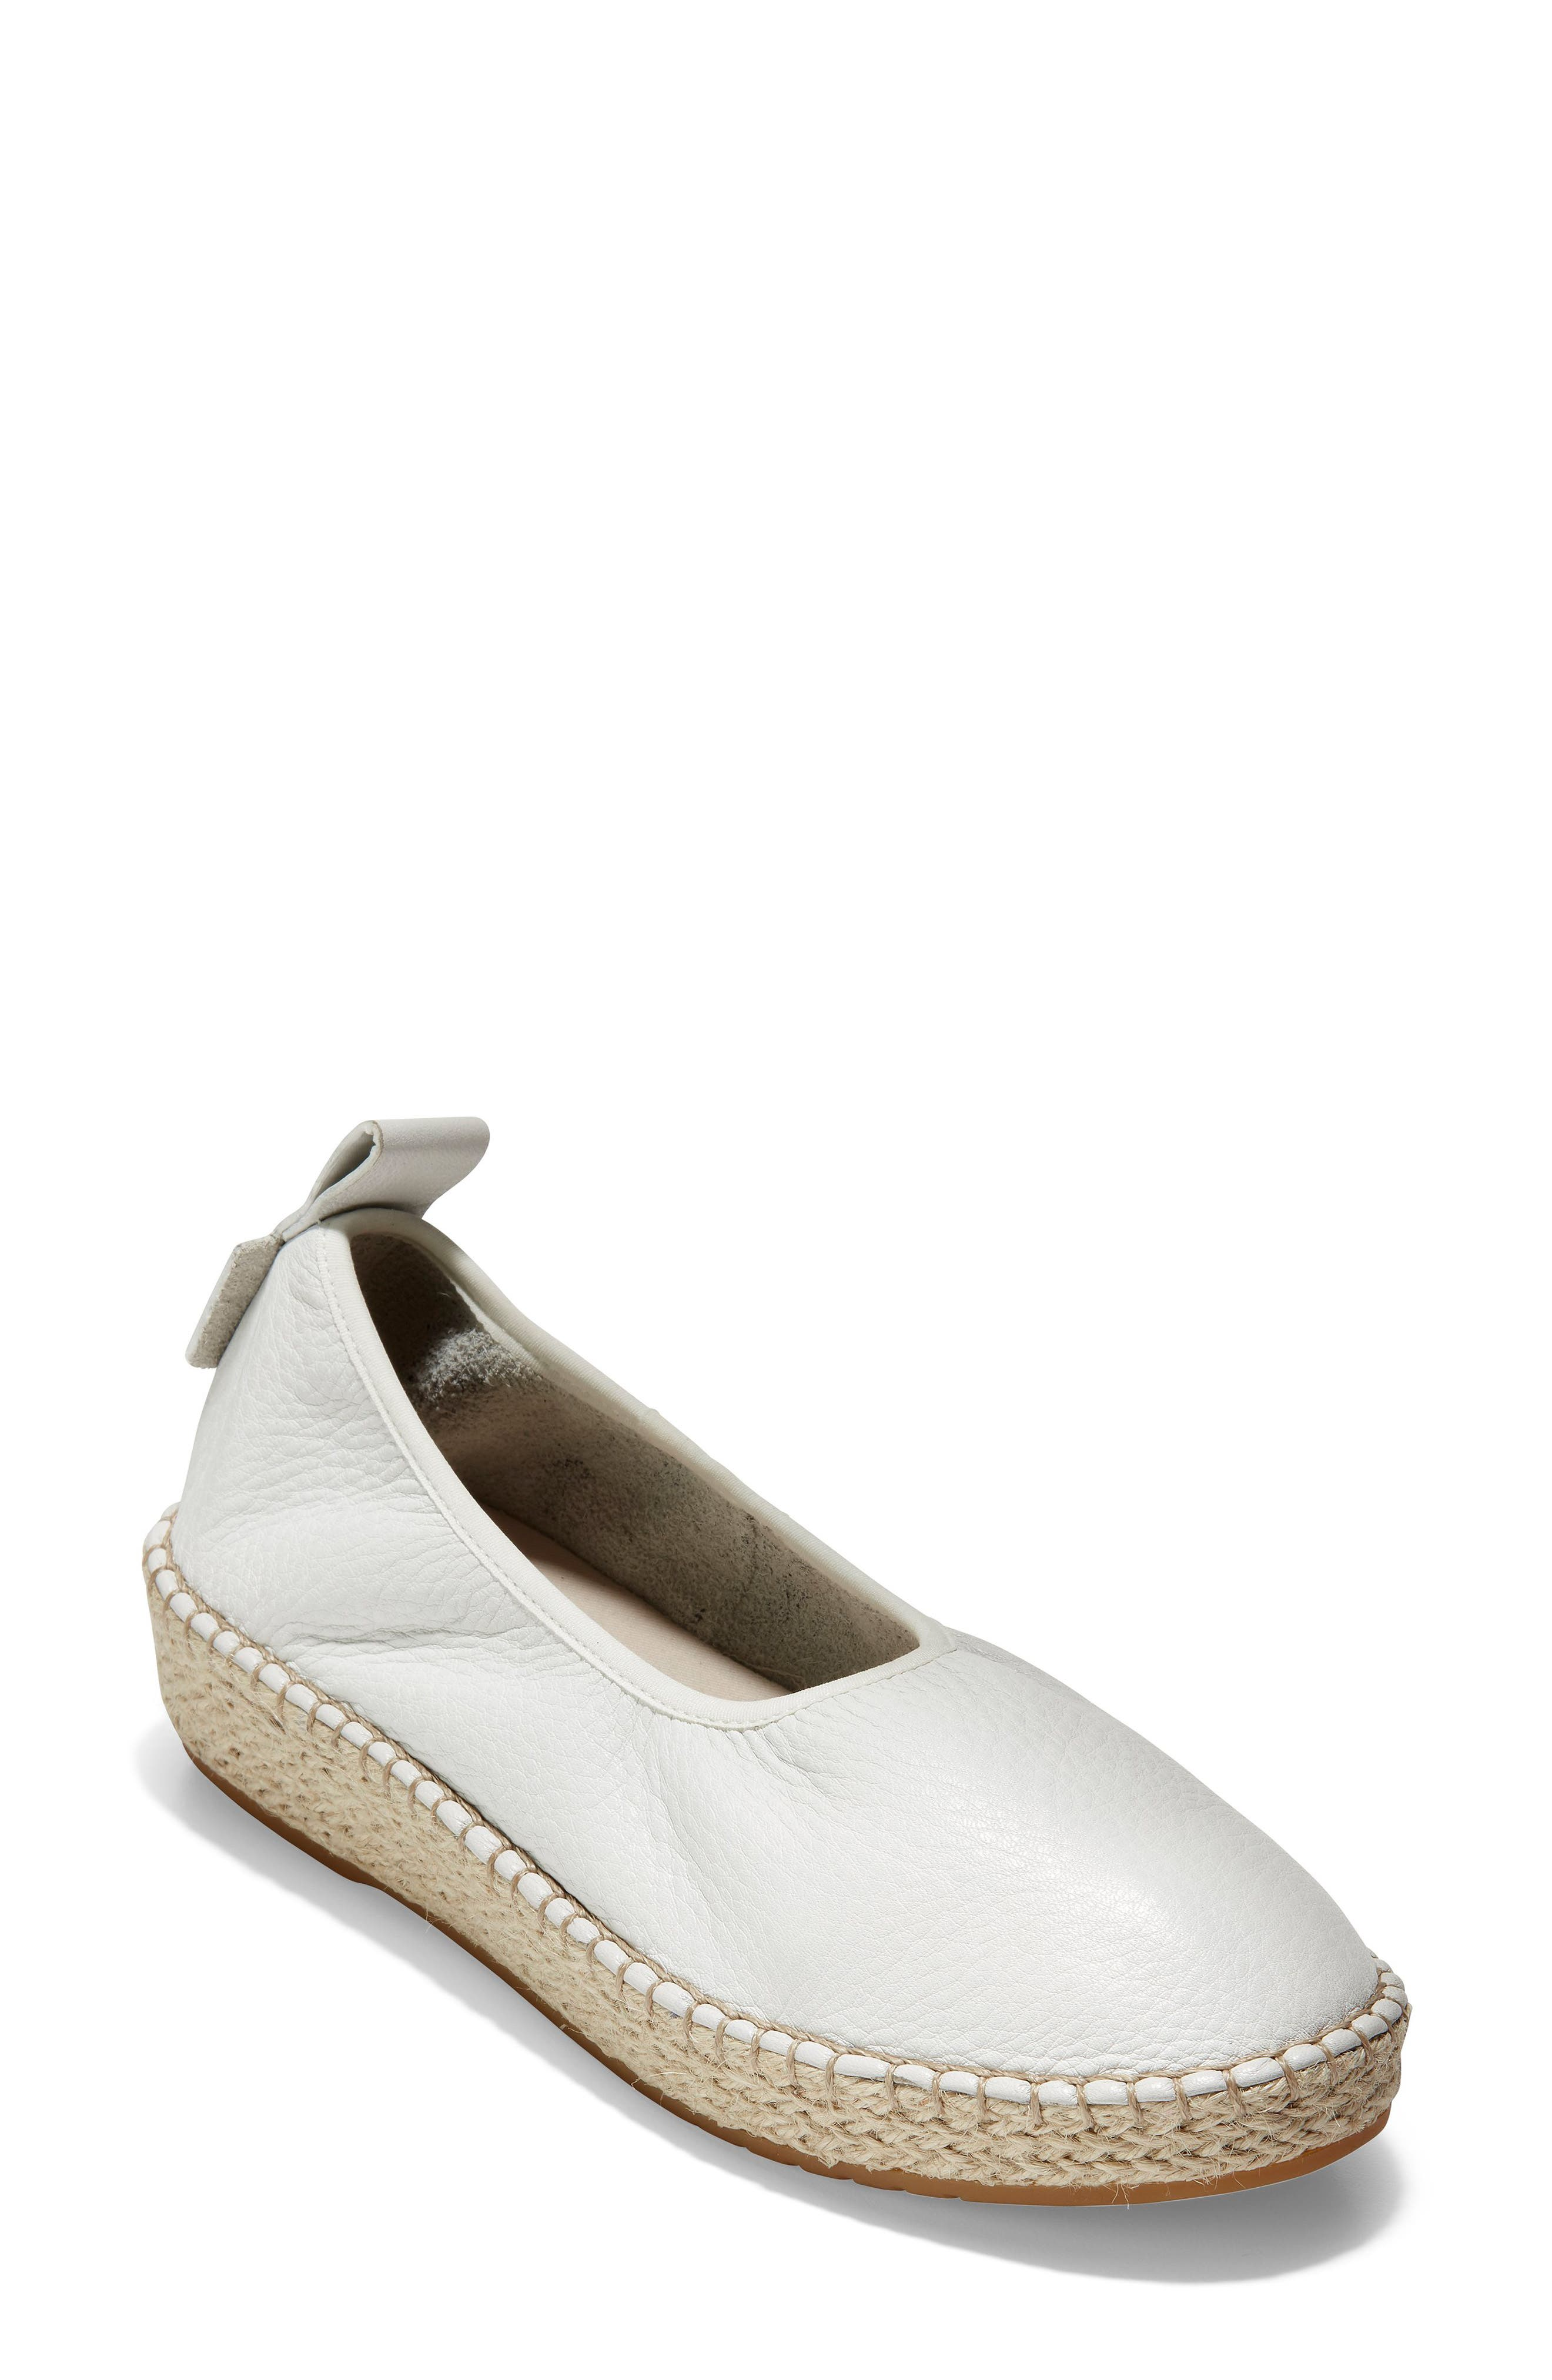 Cole Haan Cloudfeel Espadrille B - White